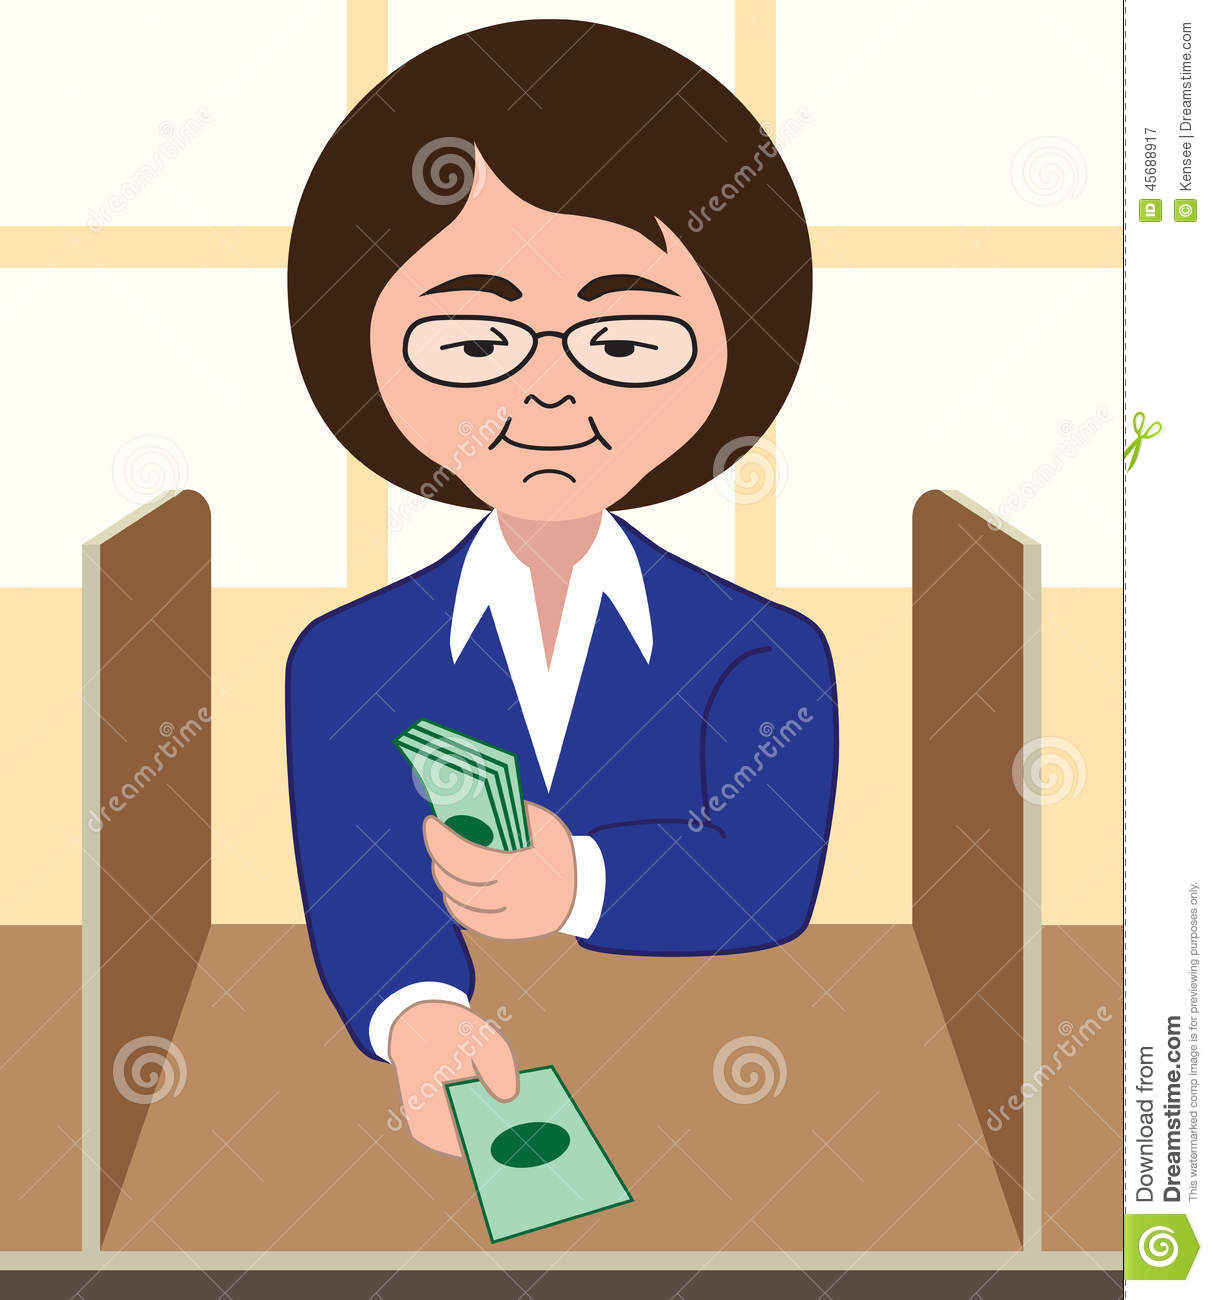 Stock Illustration Bank Teller Female Conducting Cash Transaction Image45688917 additionally University Society Categorisation together with Vector Book Book With Different Color as well Cute egg writing paper 229726127315989308 together with Smartphone Addiction Funny Sad Images. on post office cartoon